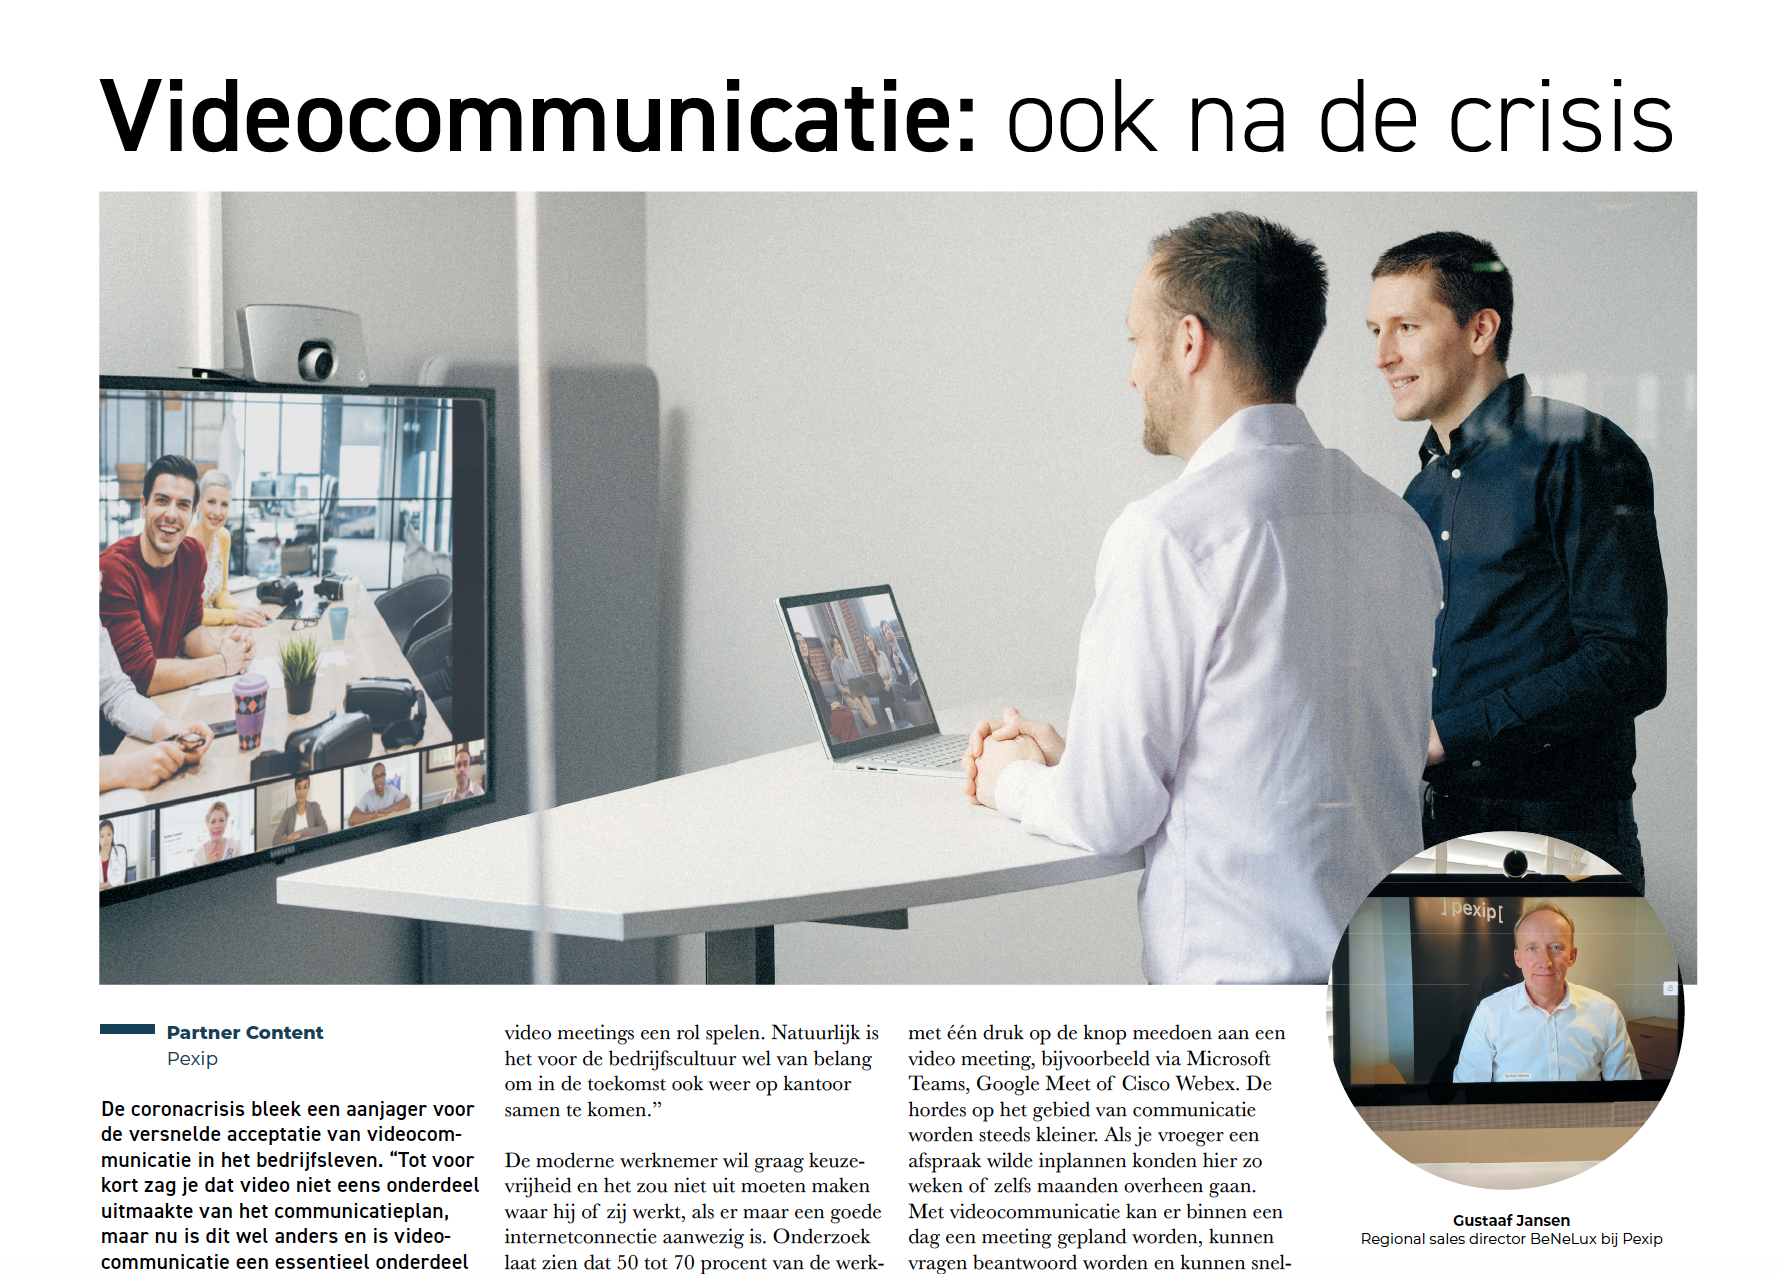 Gustaaf Jansen, Regional sales director BeNeLux in Pexip, in 16 September publication of Dutch Het Financieel Dagblad